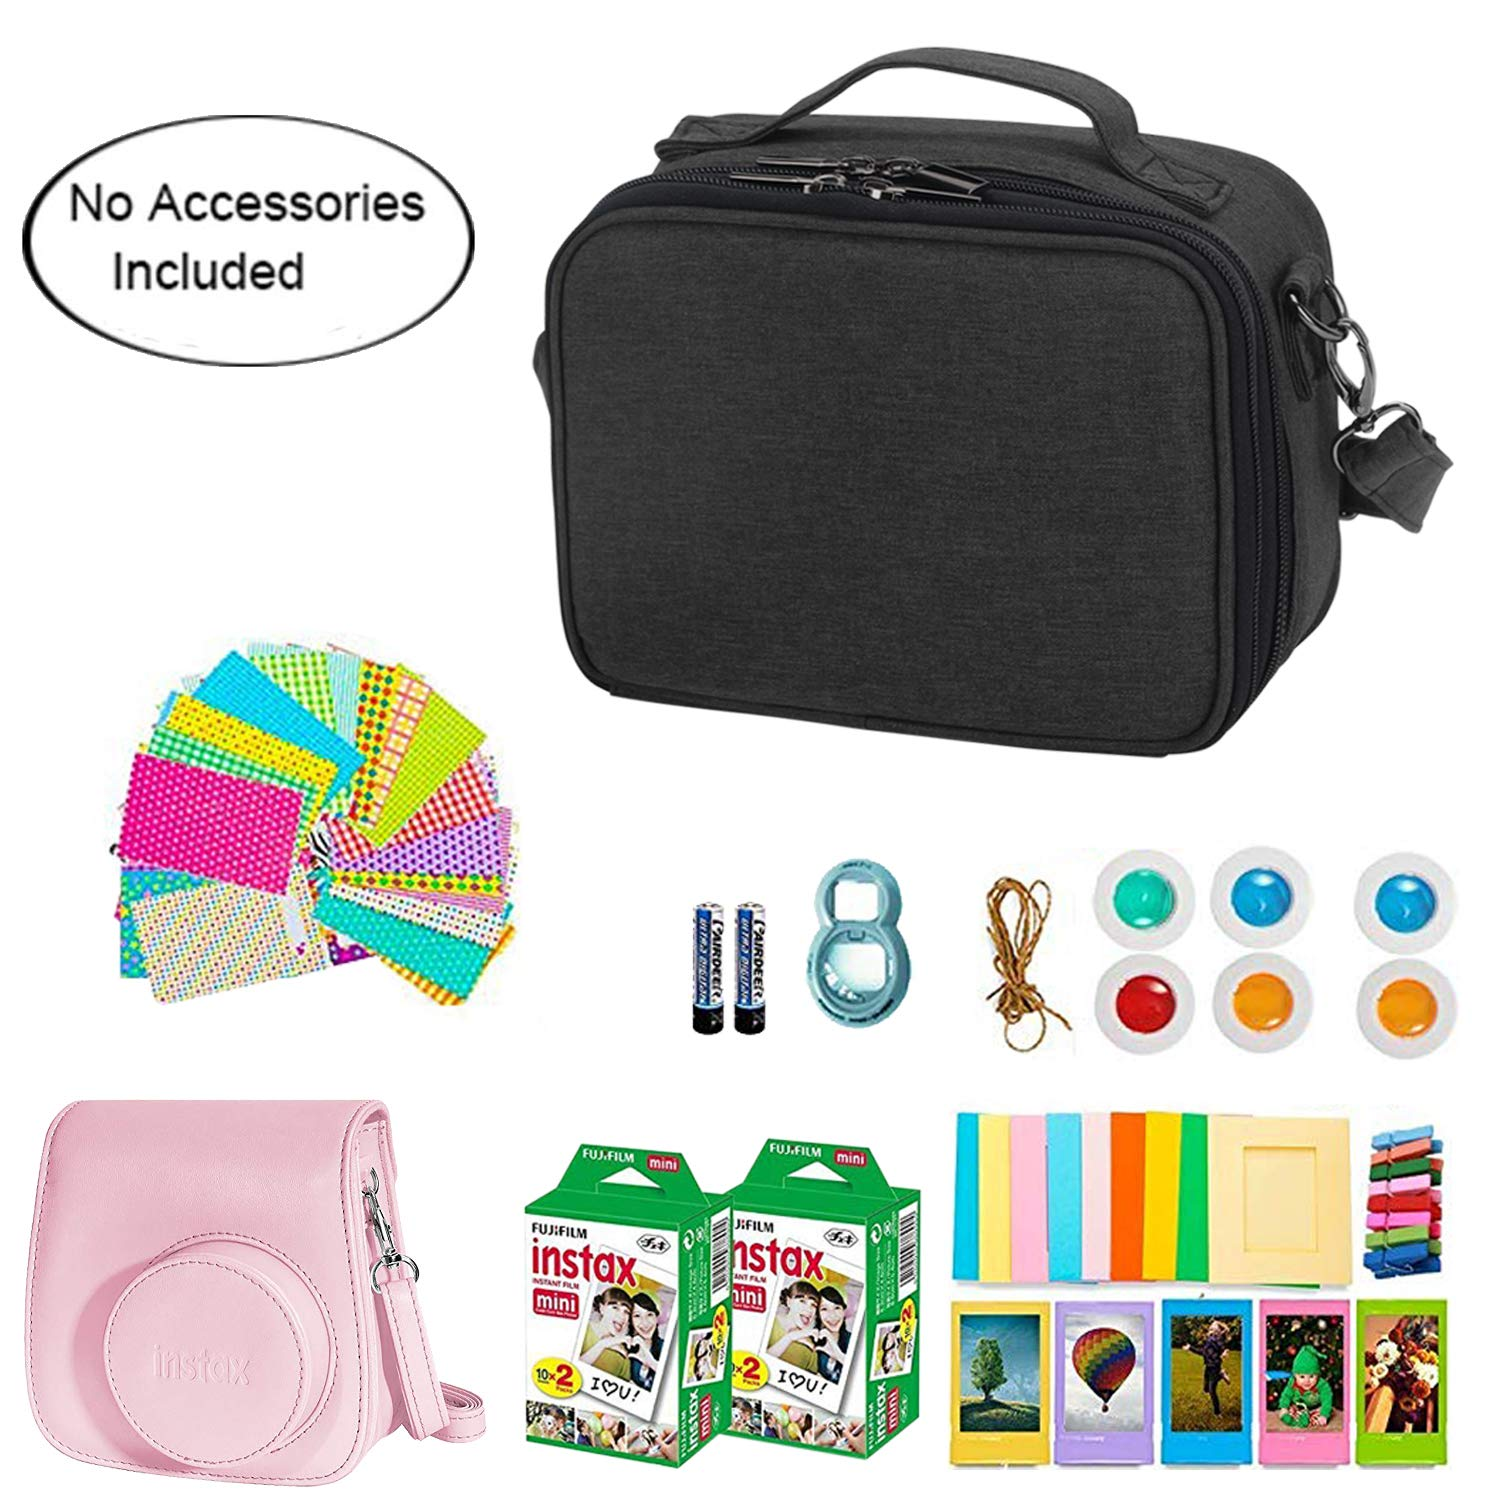 Teamoy Protective Case Compatible with Fujifilm Instax Mini 8 Black Bag Only Travel Carrying Storage Case for Instant Camera and Accessories Min 9